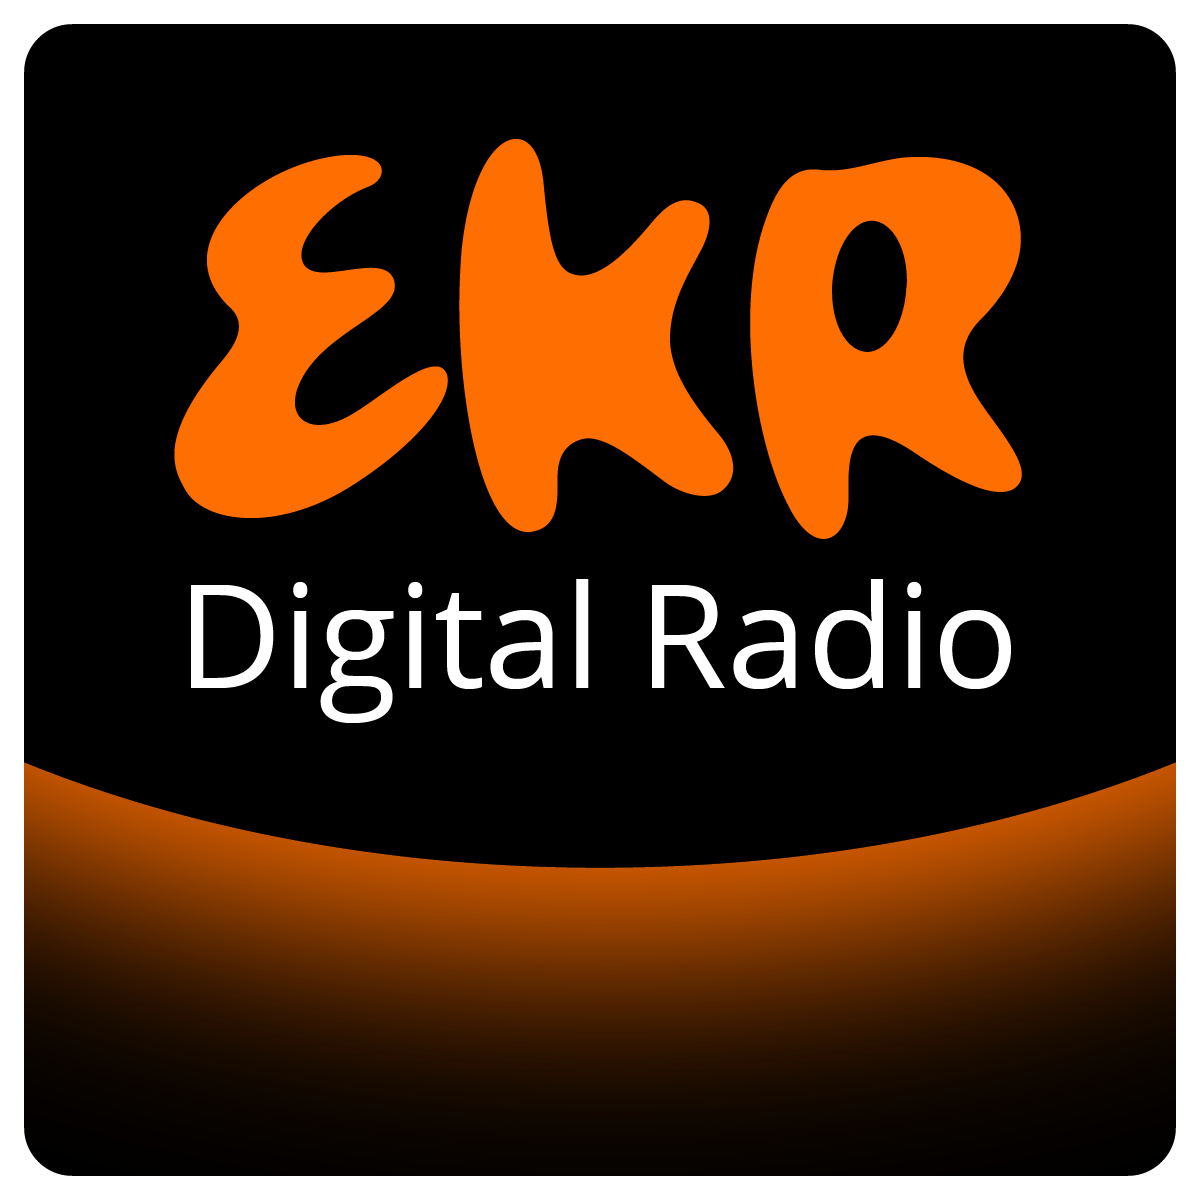 EKR - EUROPEAN KLASSIK ROCK (http://ekrdigital.com/player/#/european-klassik-rock)